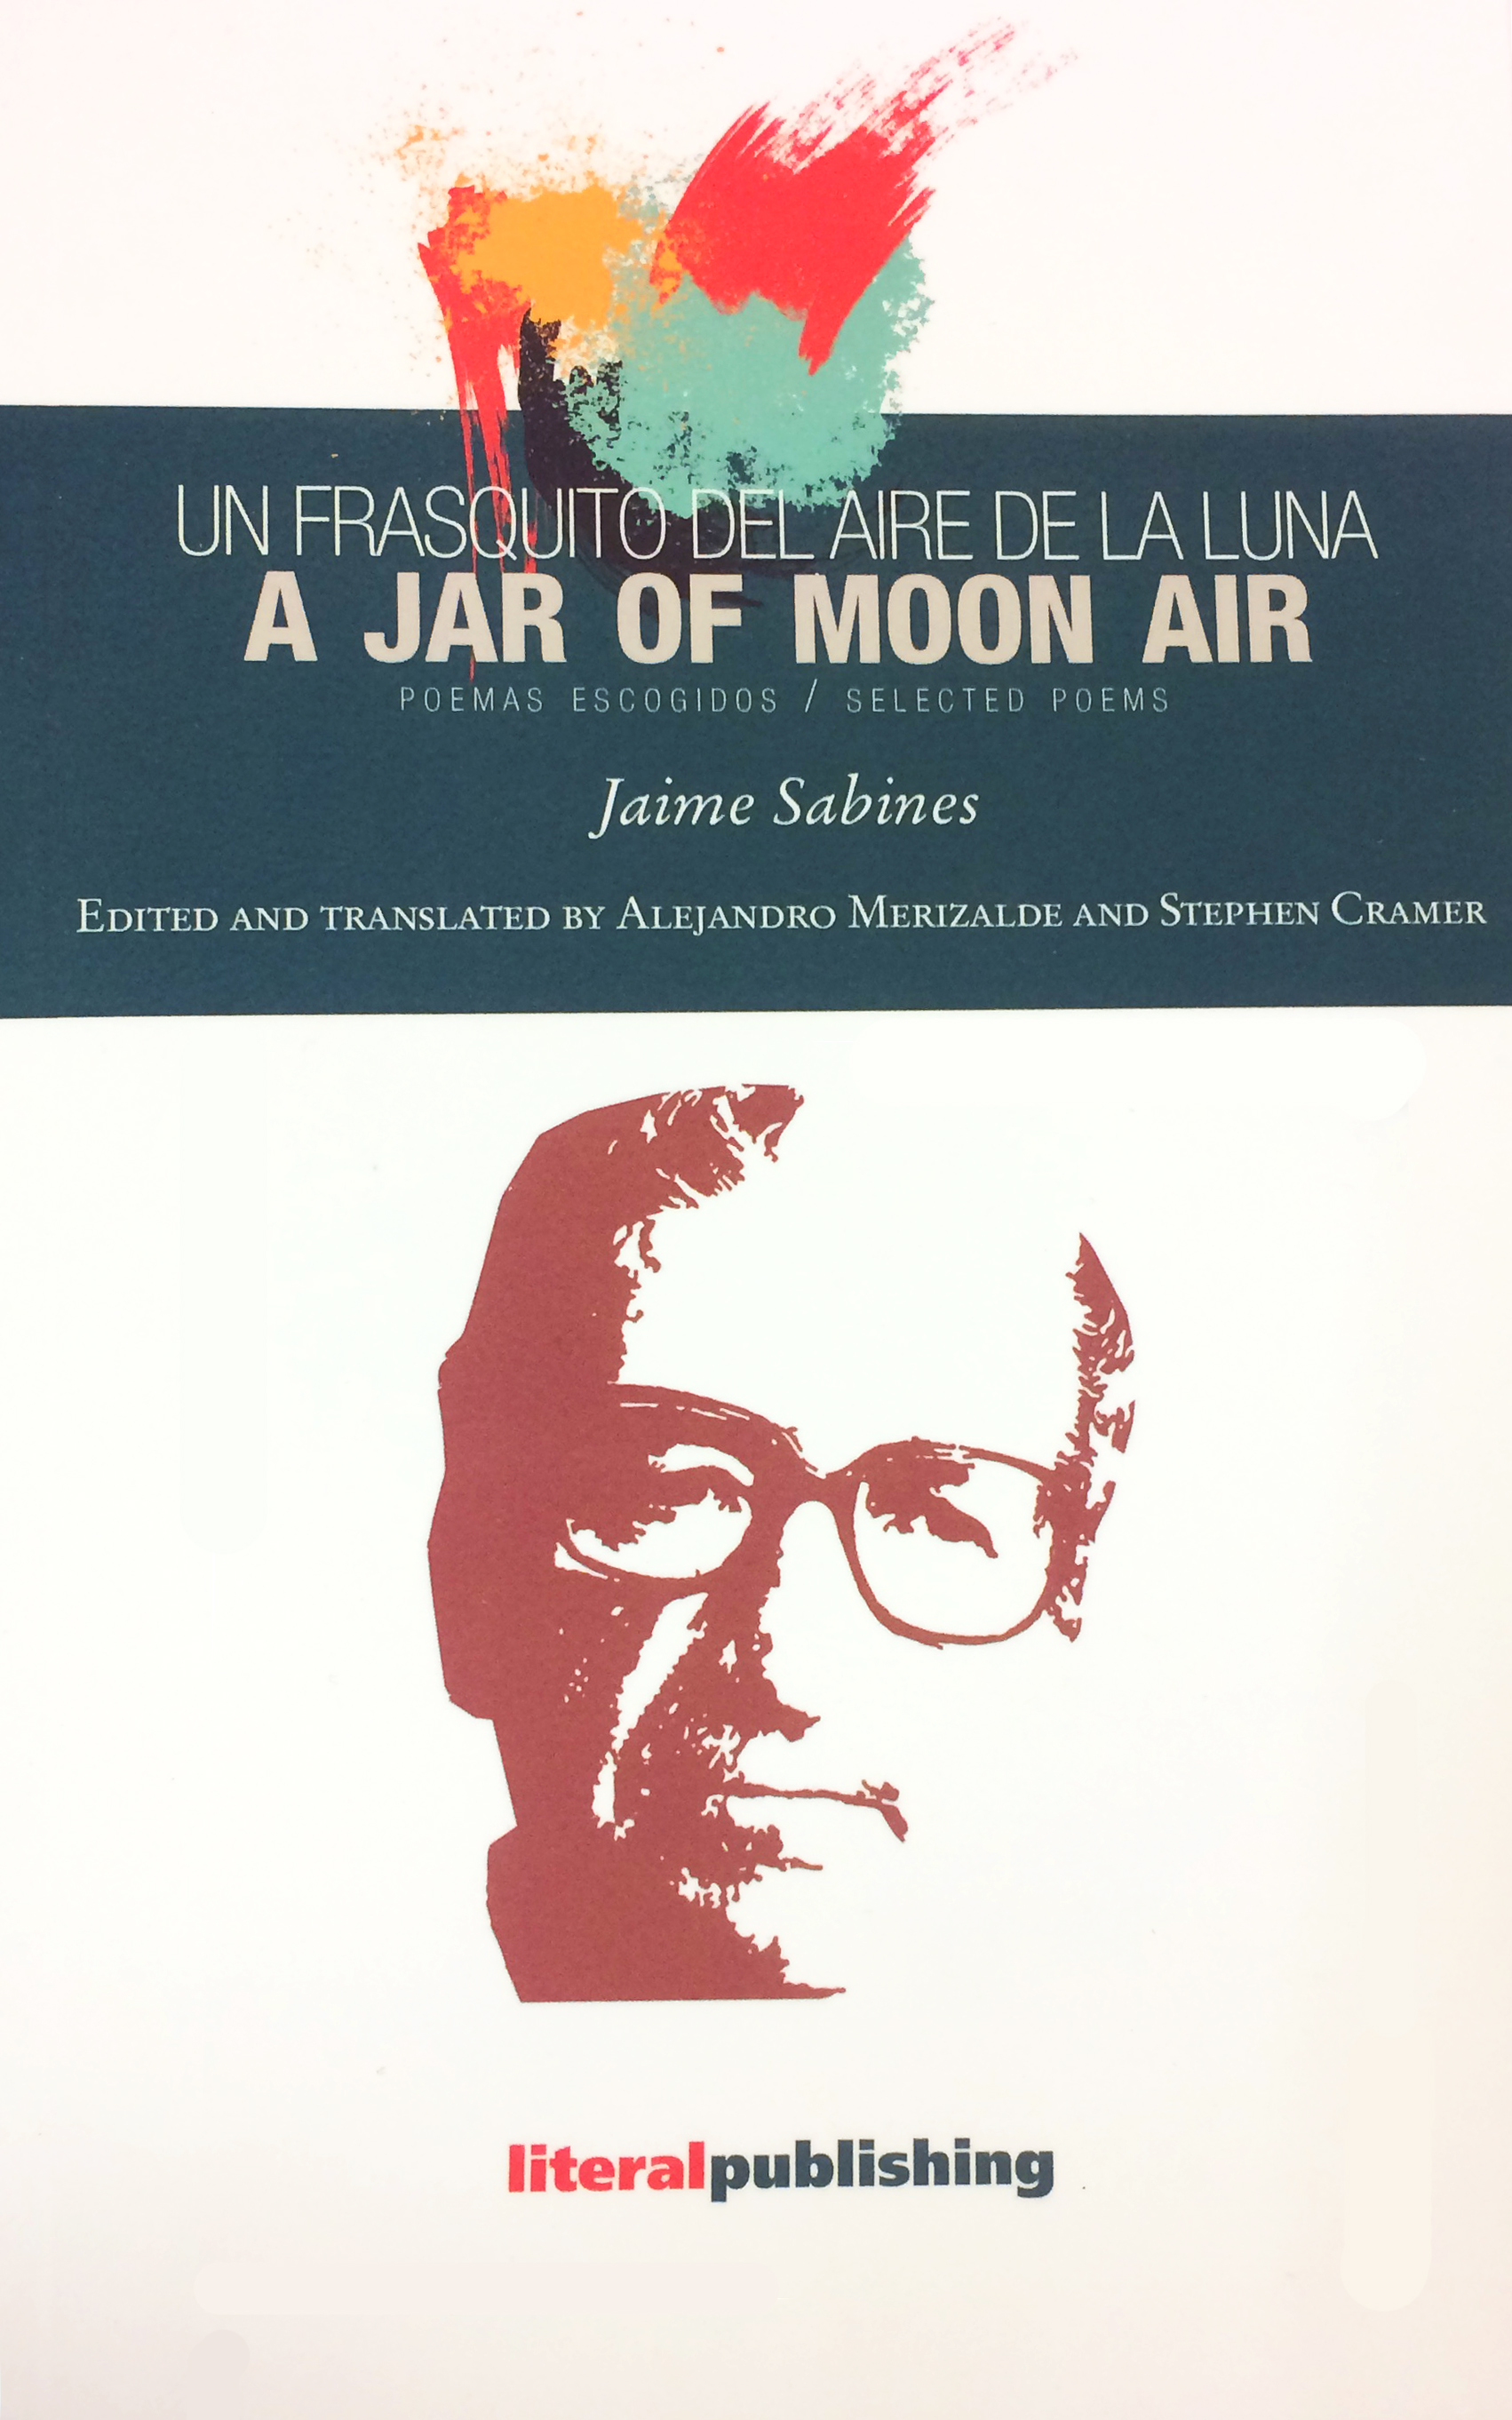 cover of A Jar of Moon Air: Selected Poems of Jaime Sabines translated by  translated by Stephen Cramer and Alejandro Merizalde